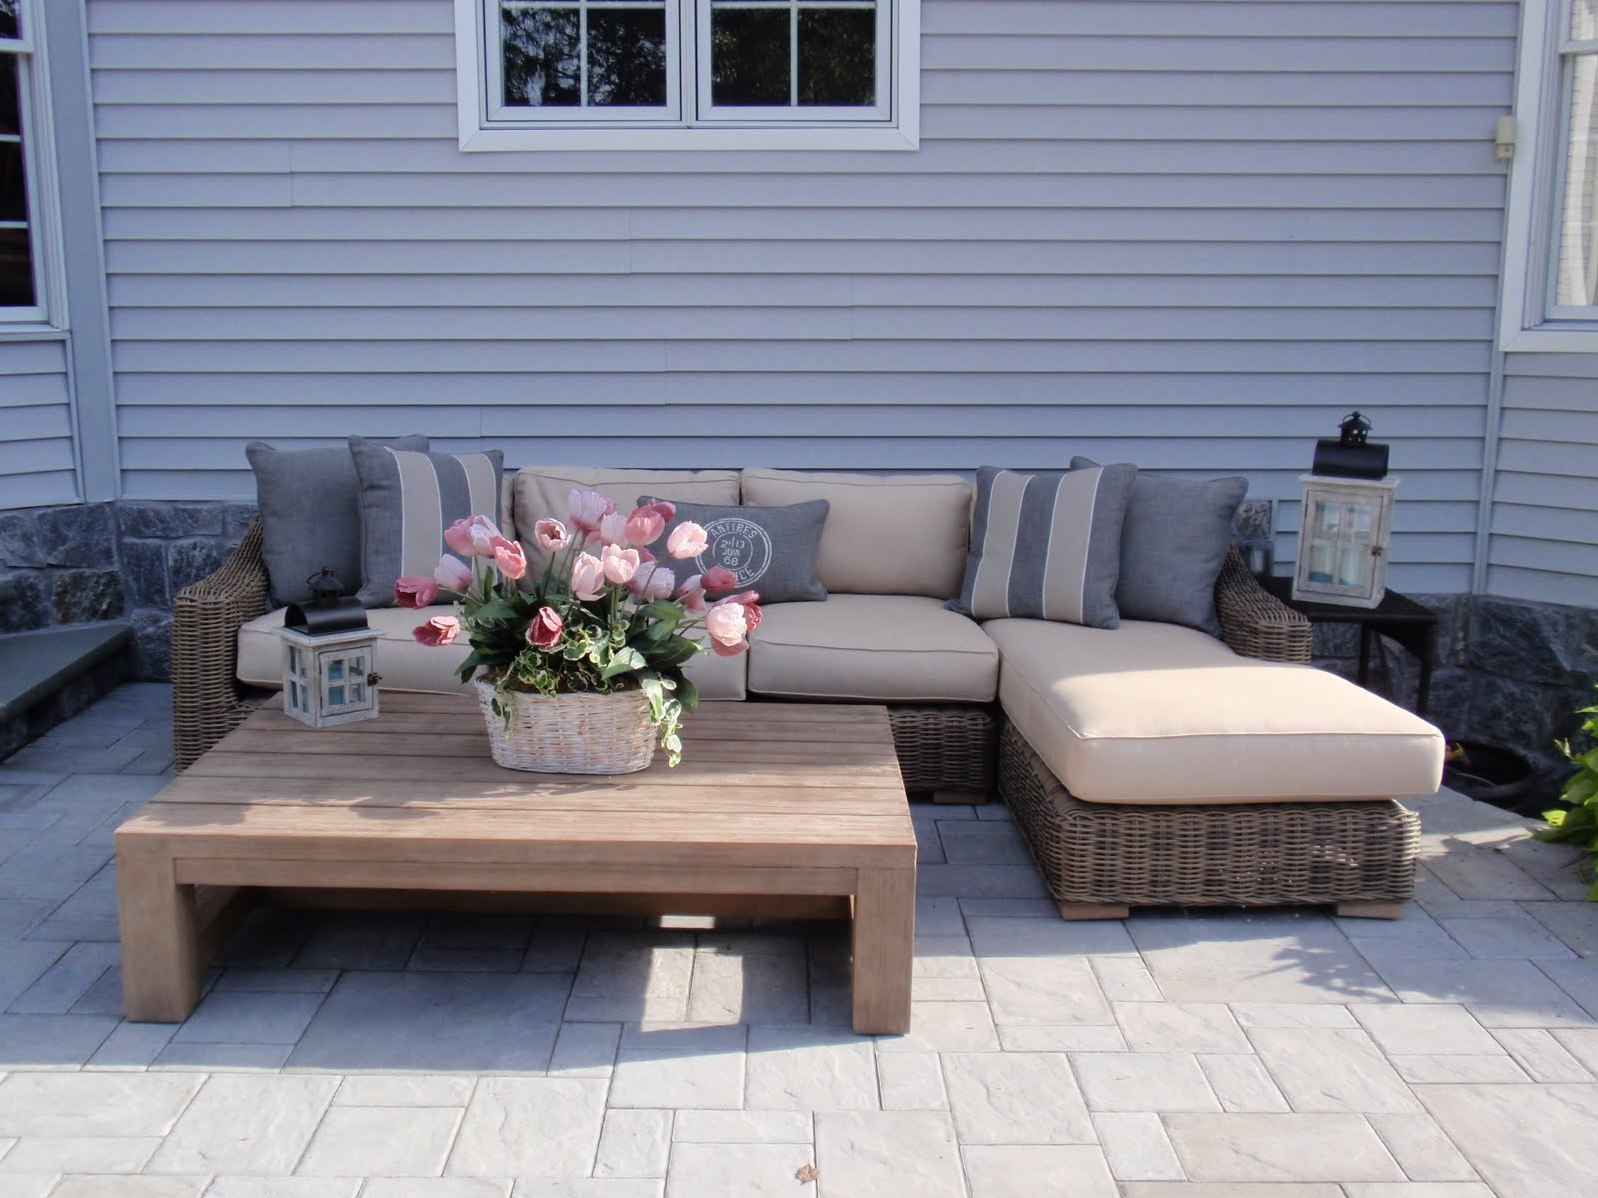 Rustic Outdoor Coffee Table